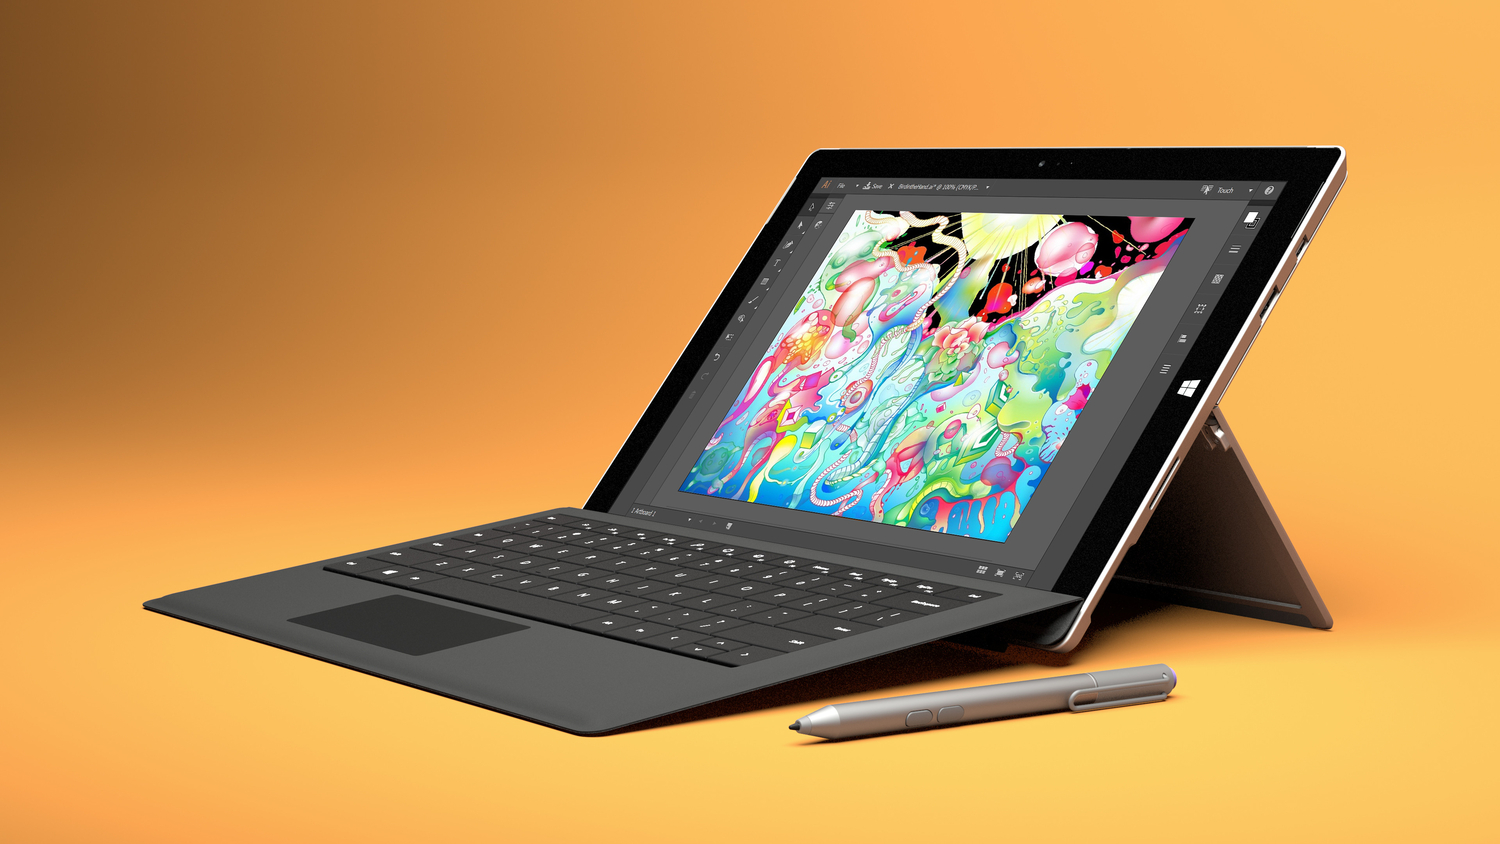 Why The Surface Pro 4 Beats The iPad Pro